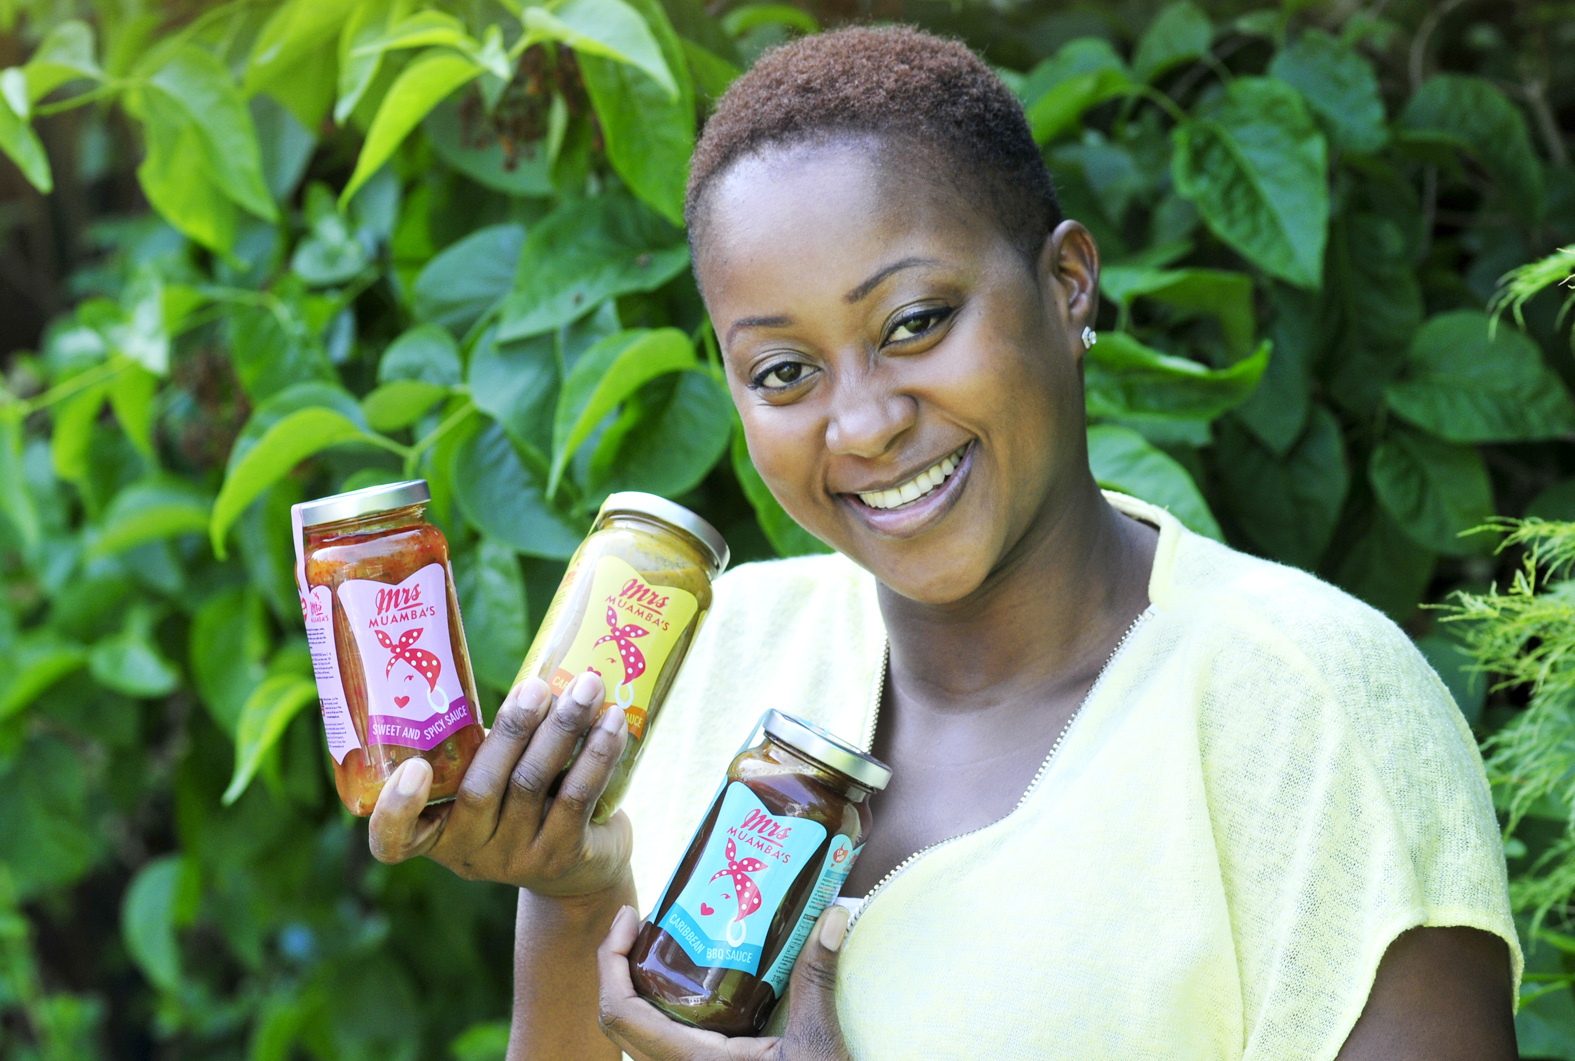 Fabrice Muamba's wife Shauna launches Mrs Muamba's Caribbean Sauces